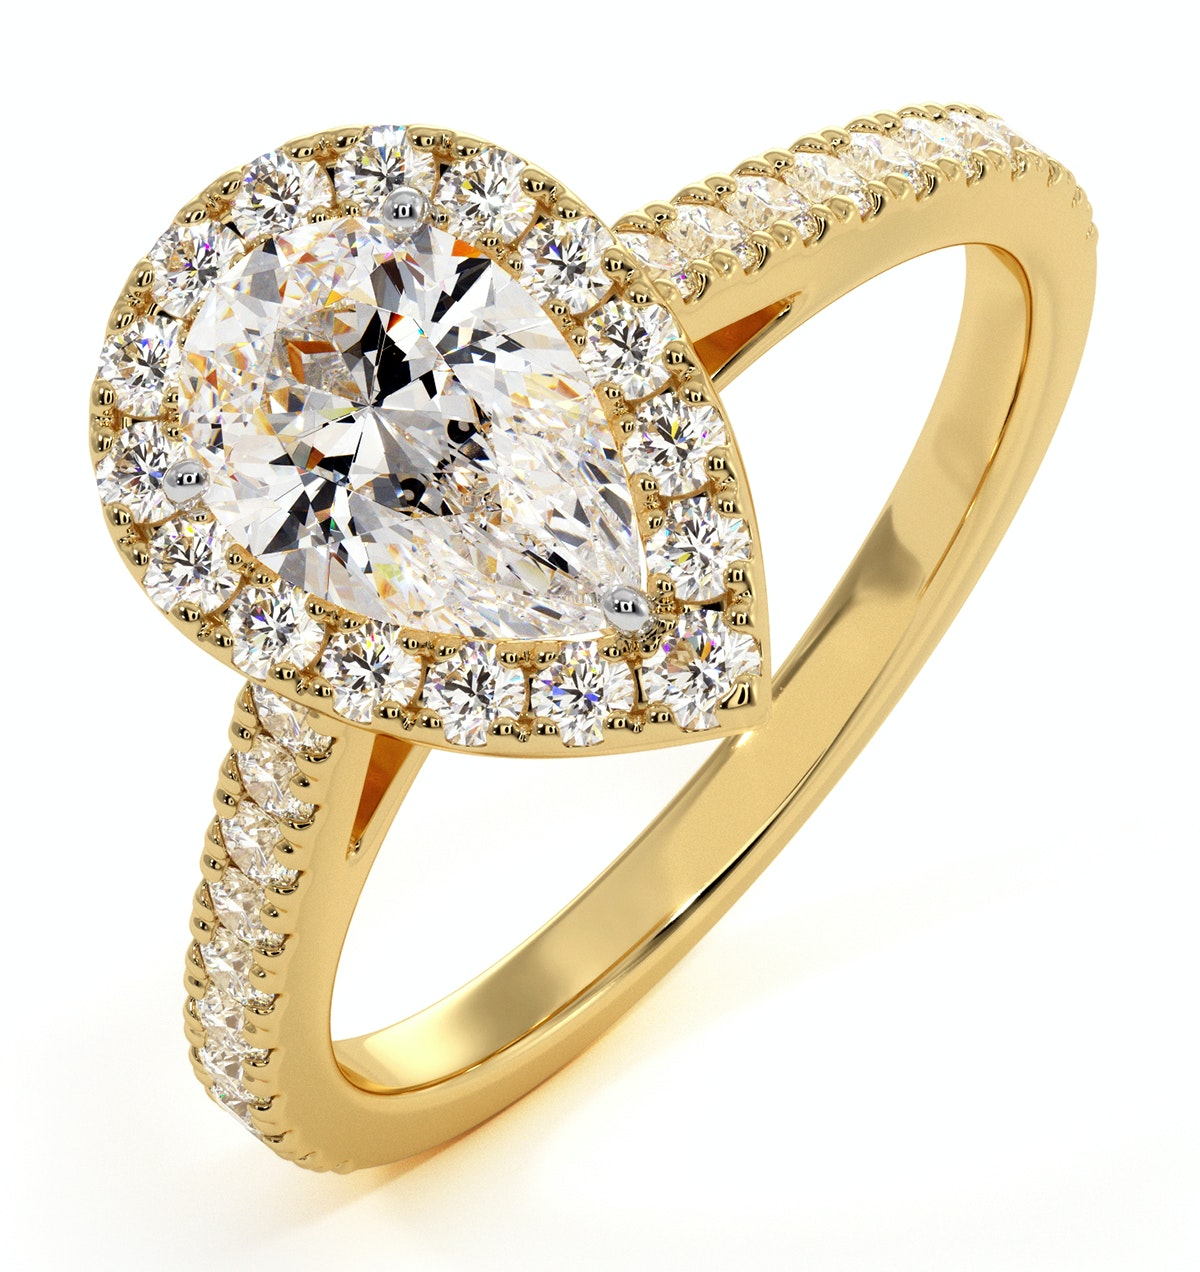 Diana GIA Diamond Pear Halo Engagement Ring in 18K Gold 1.35ct G/SI2